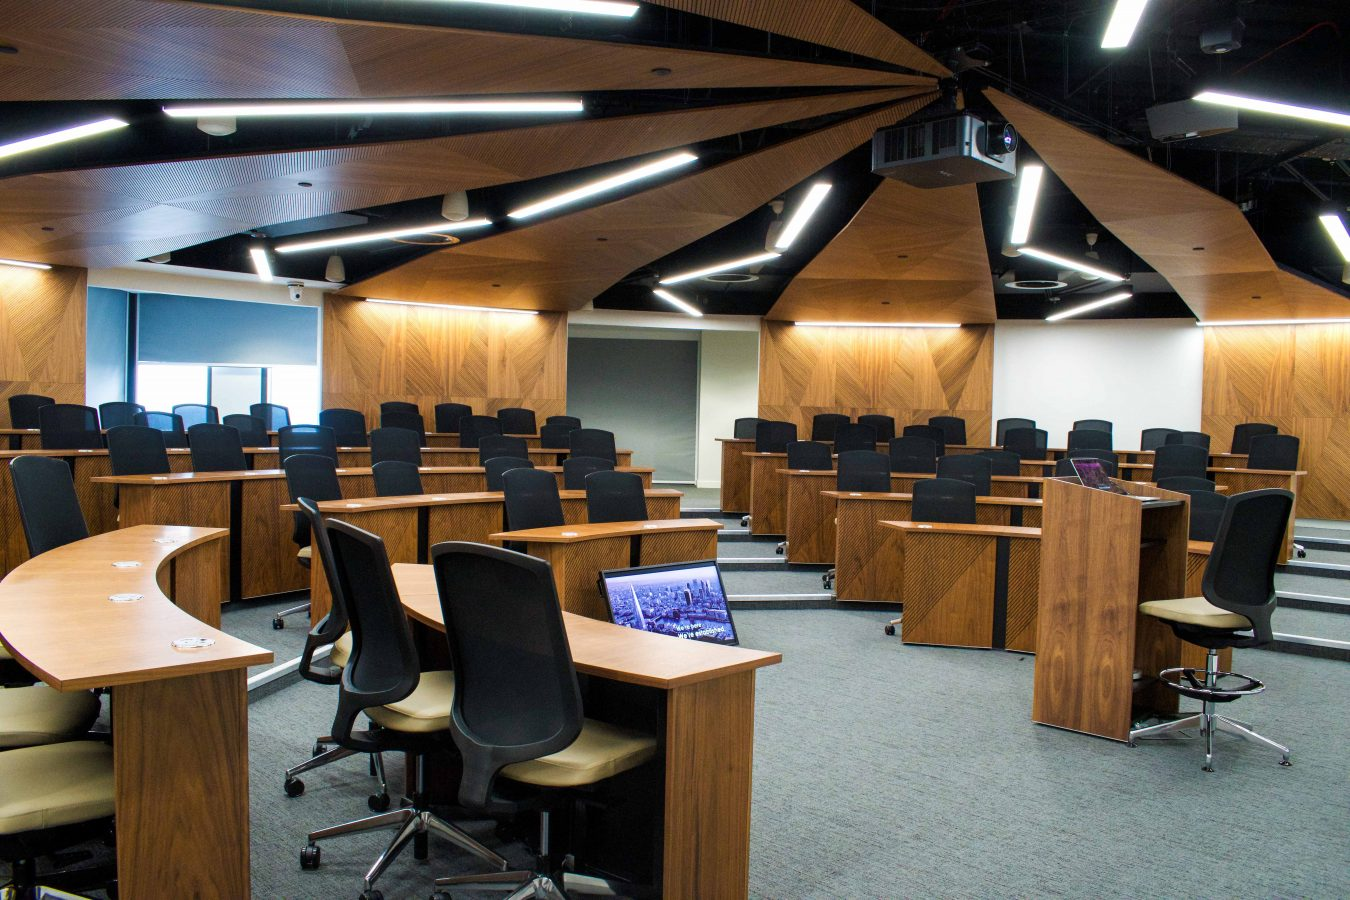 UCL Management School | AV Case Study